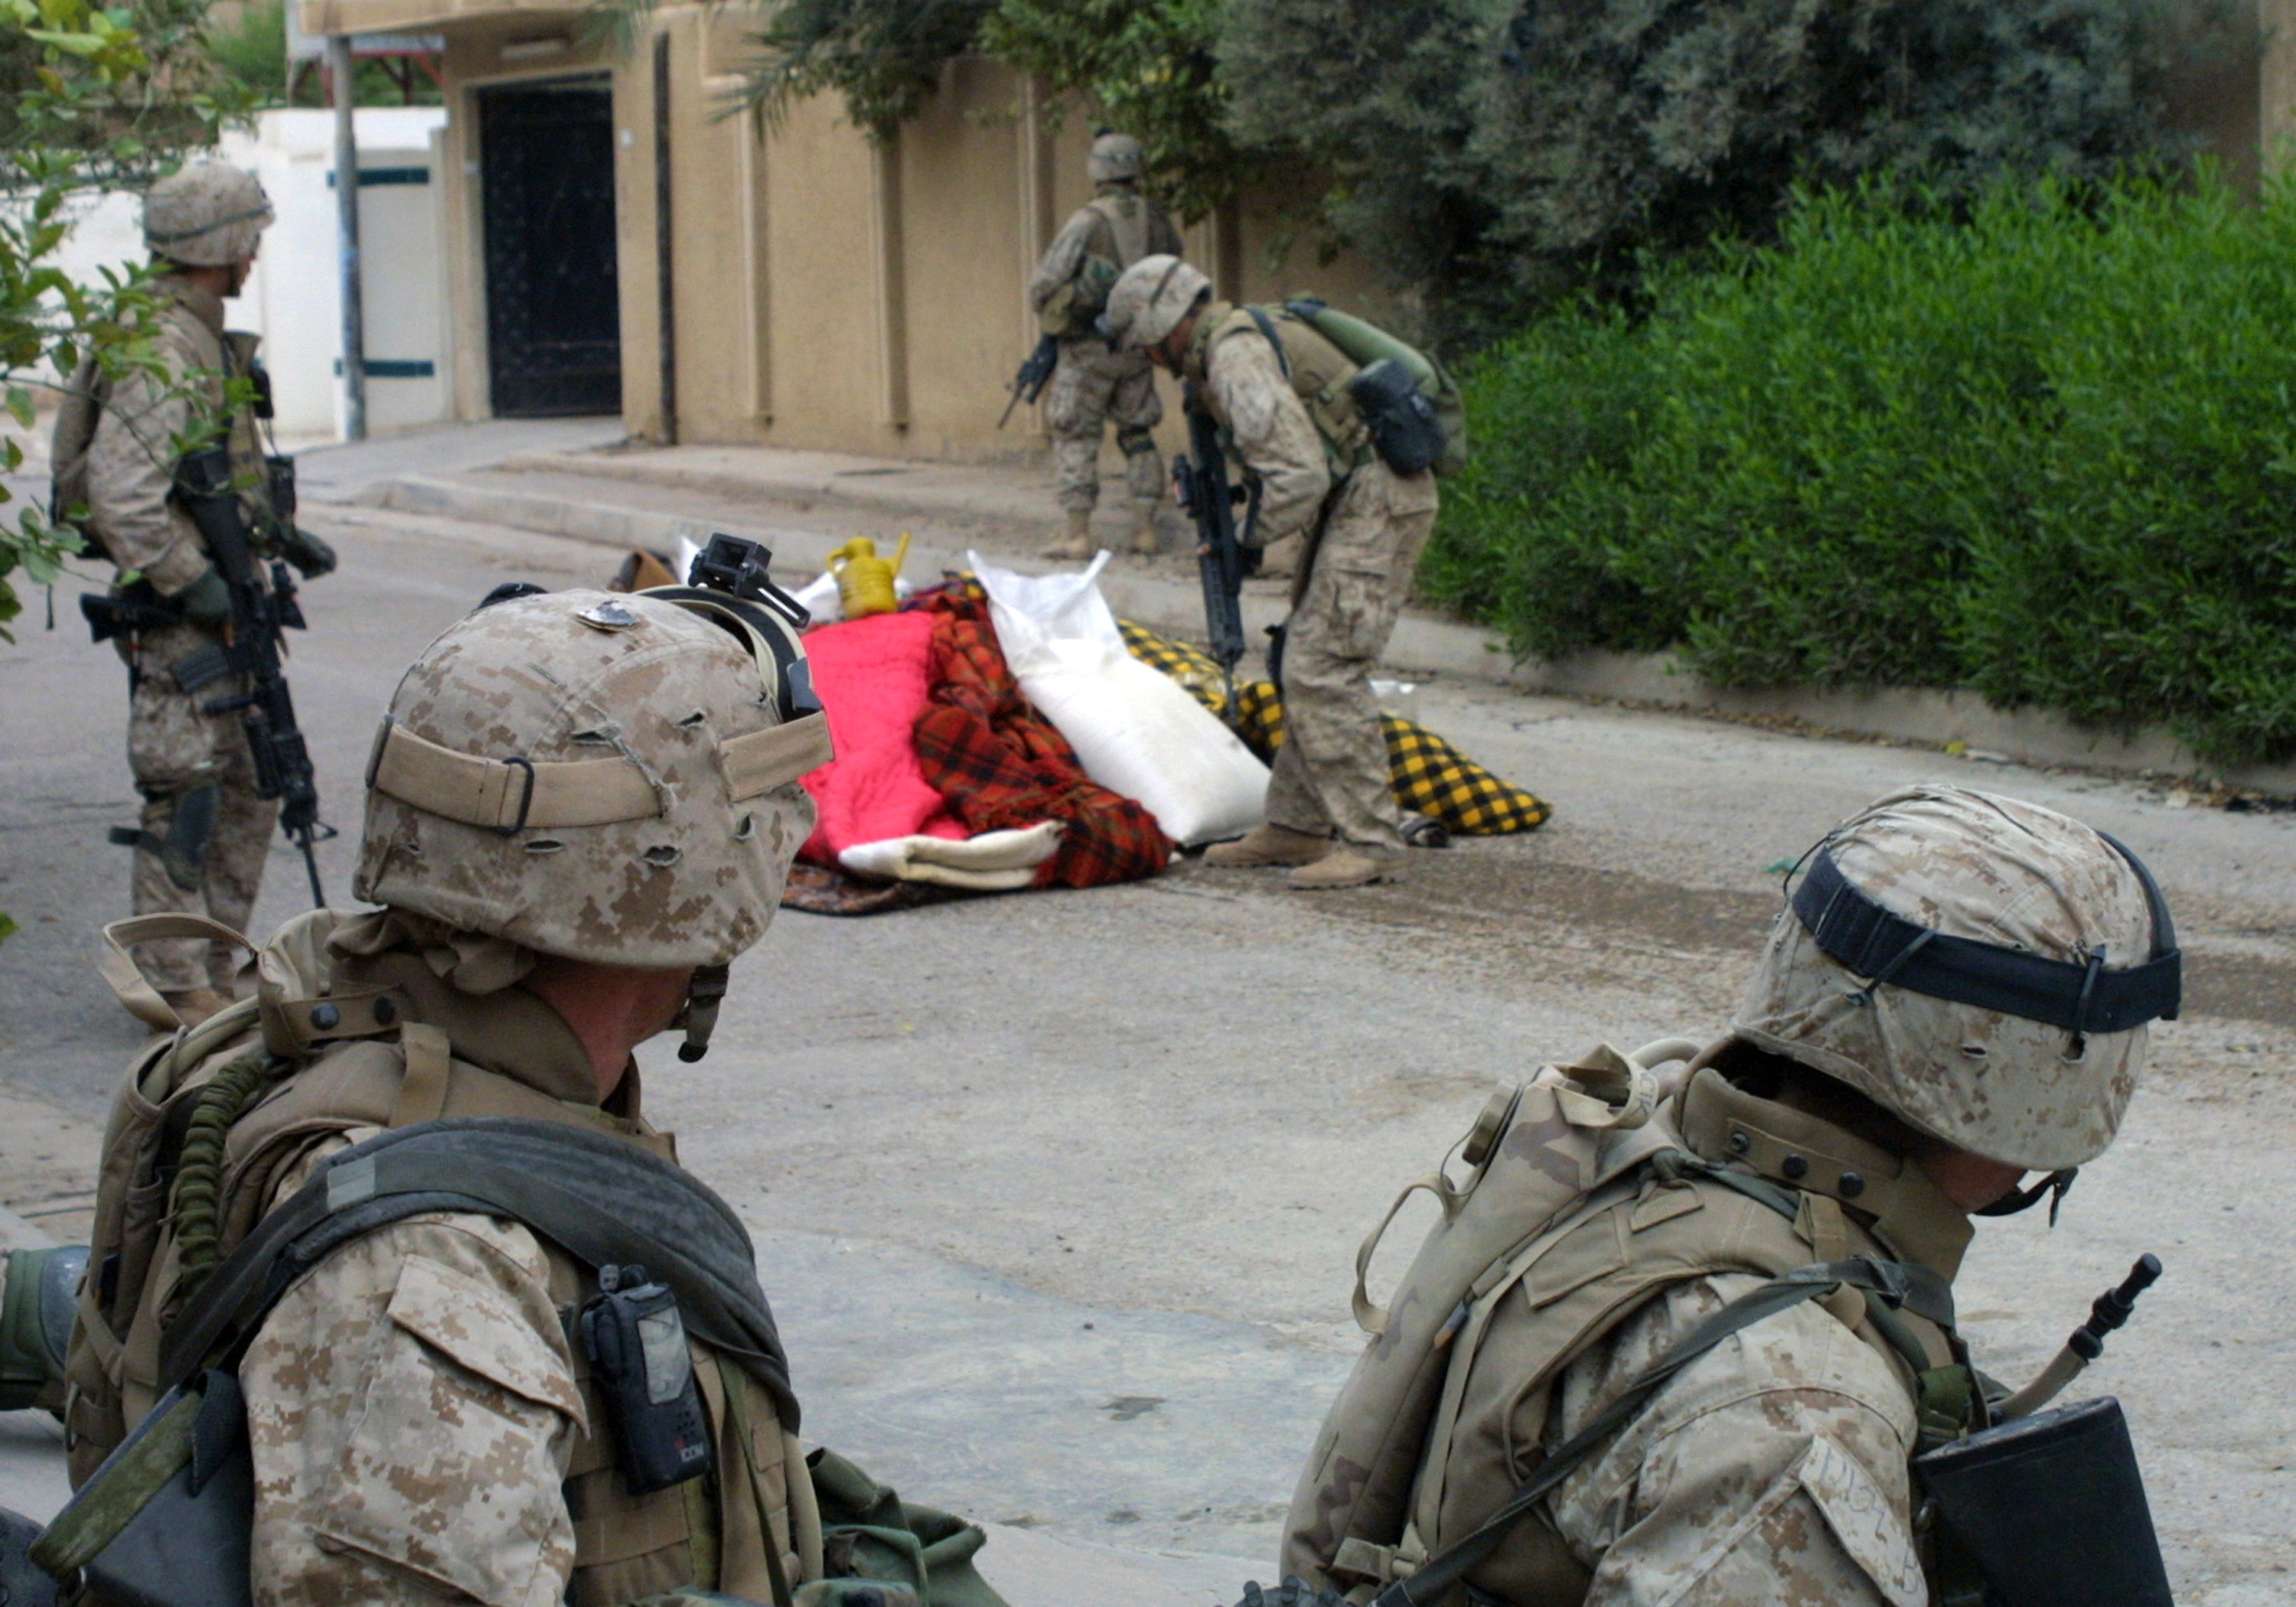 U.S. Marine Corps Bravo Company, 1ST Battalion, 3rd Marine Regiment, Marines collect confiscated bedding for proper disposal that they found in house to house searches in the city of Fallujah, Al Anbar Province, Iraq, on Nov. 17, 2004, during Operation Iraqi Freedom. (U.S. Marine Corps photo by Lance CPL. Jeremy W. Ferguson) (Released)